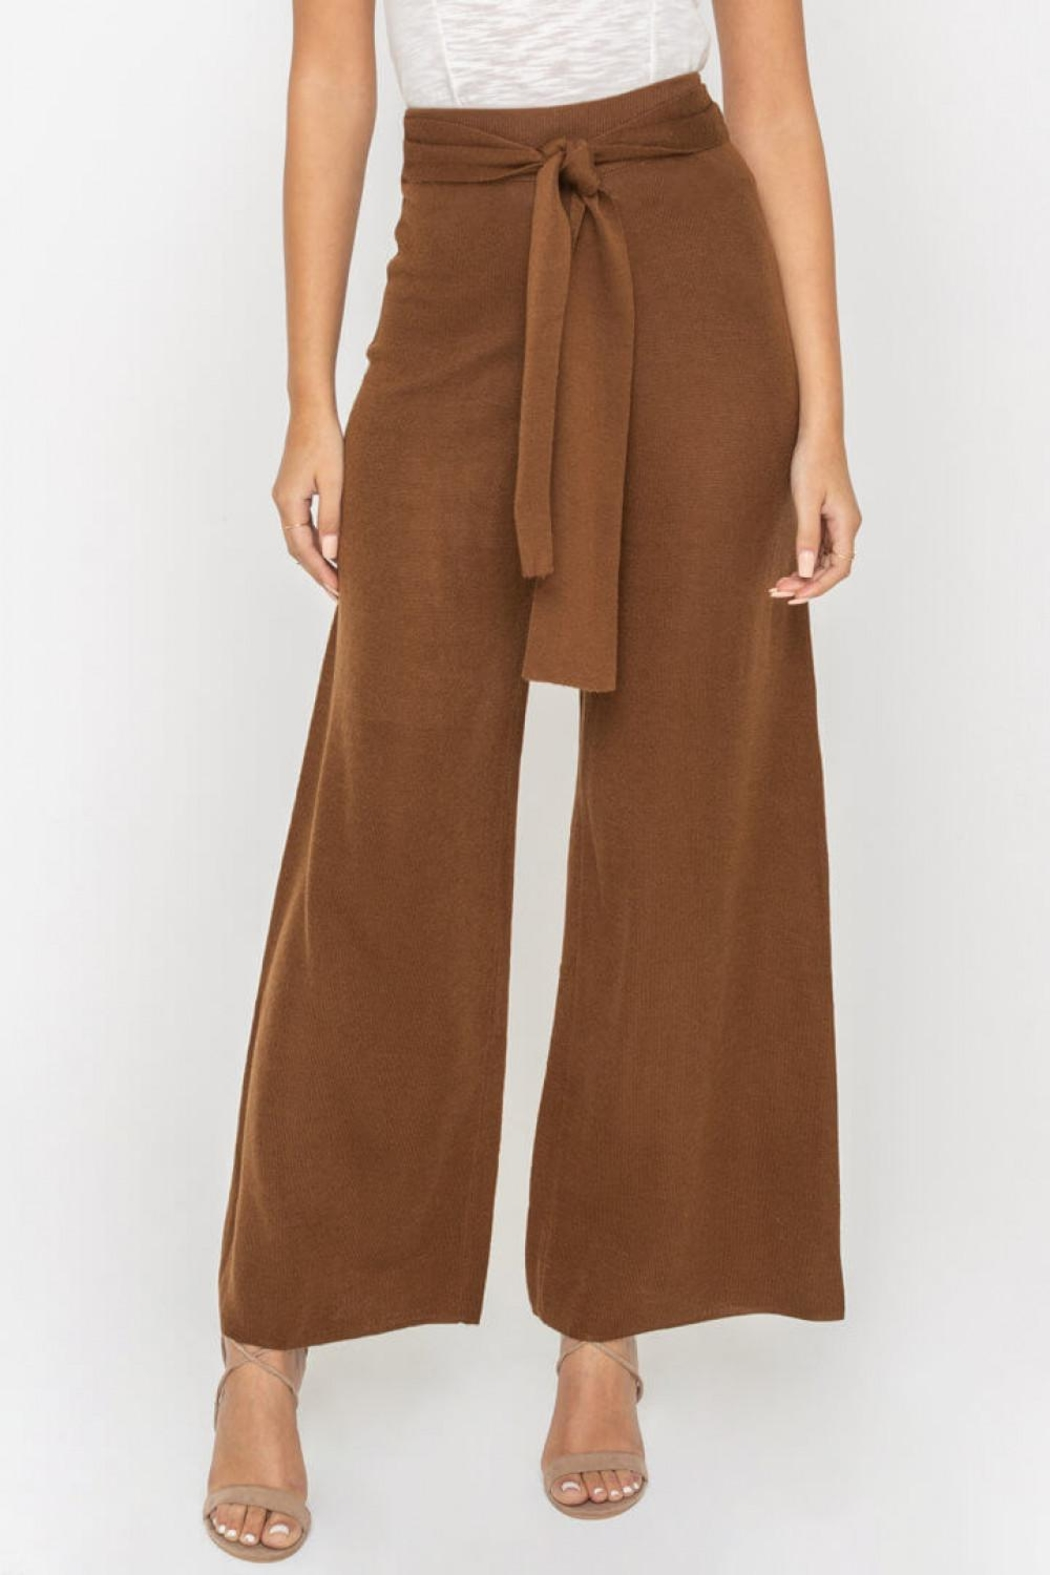 Sugarlips Waist-Tie Knit Pants - Side Cropped Image